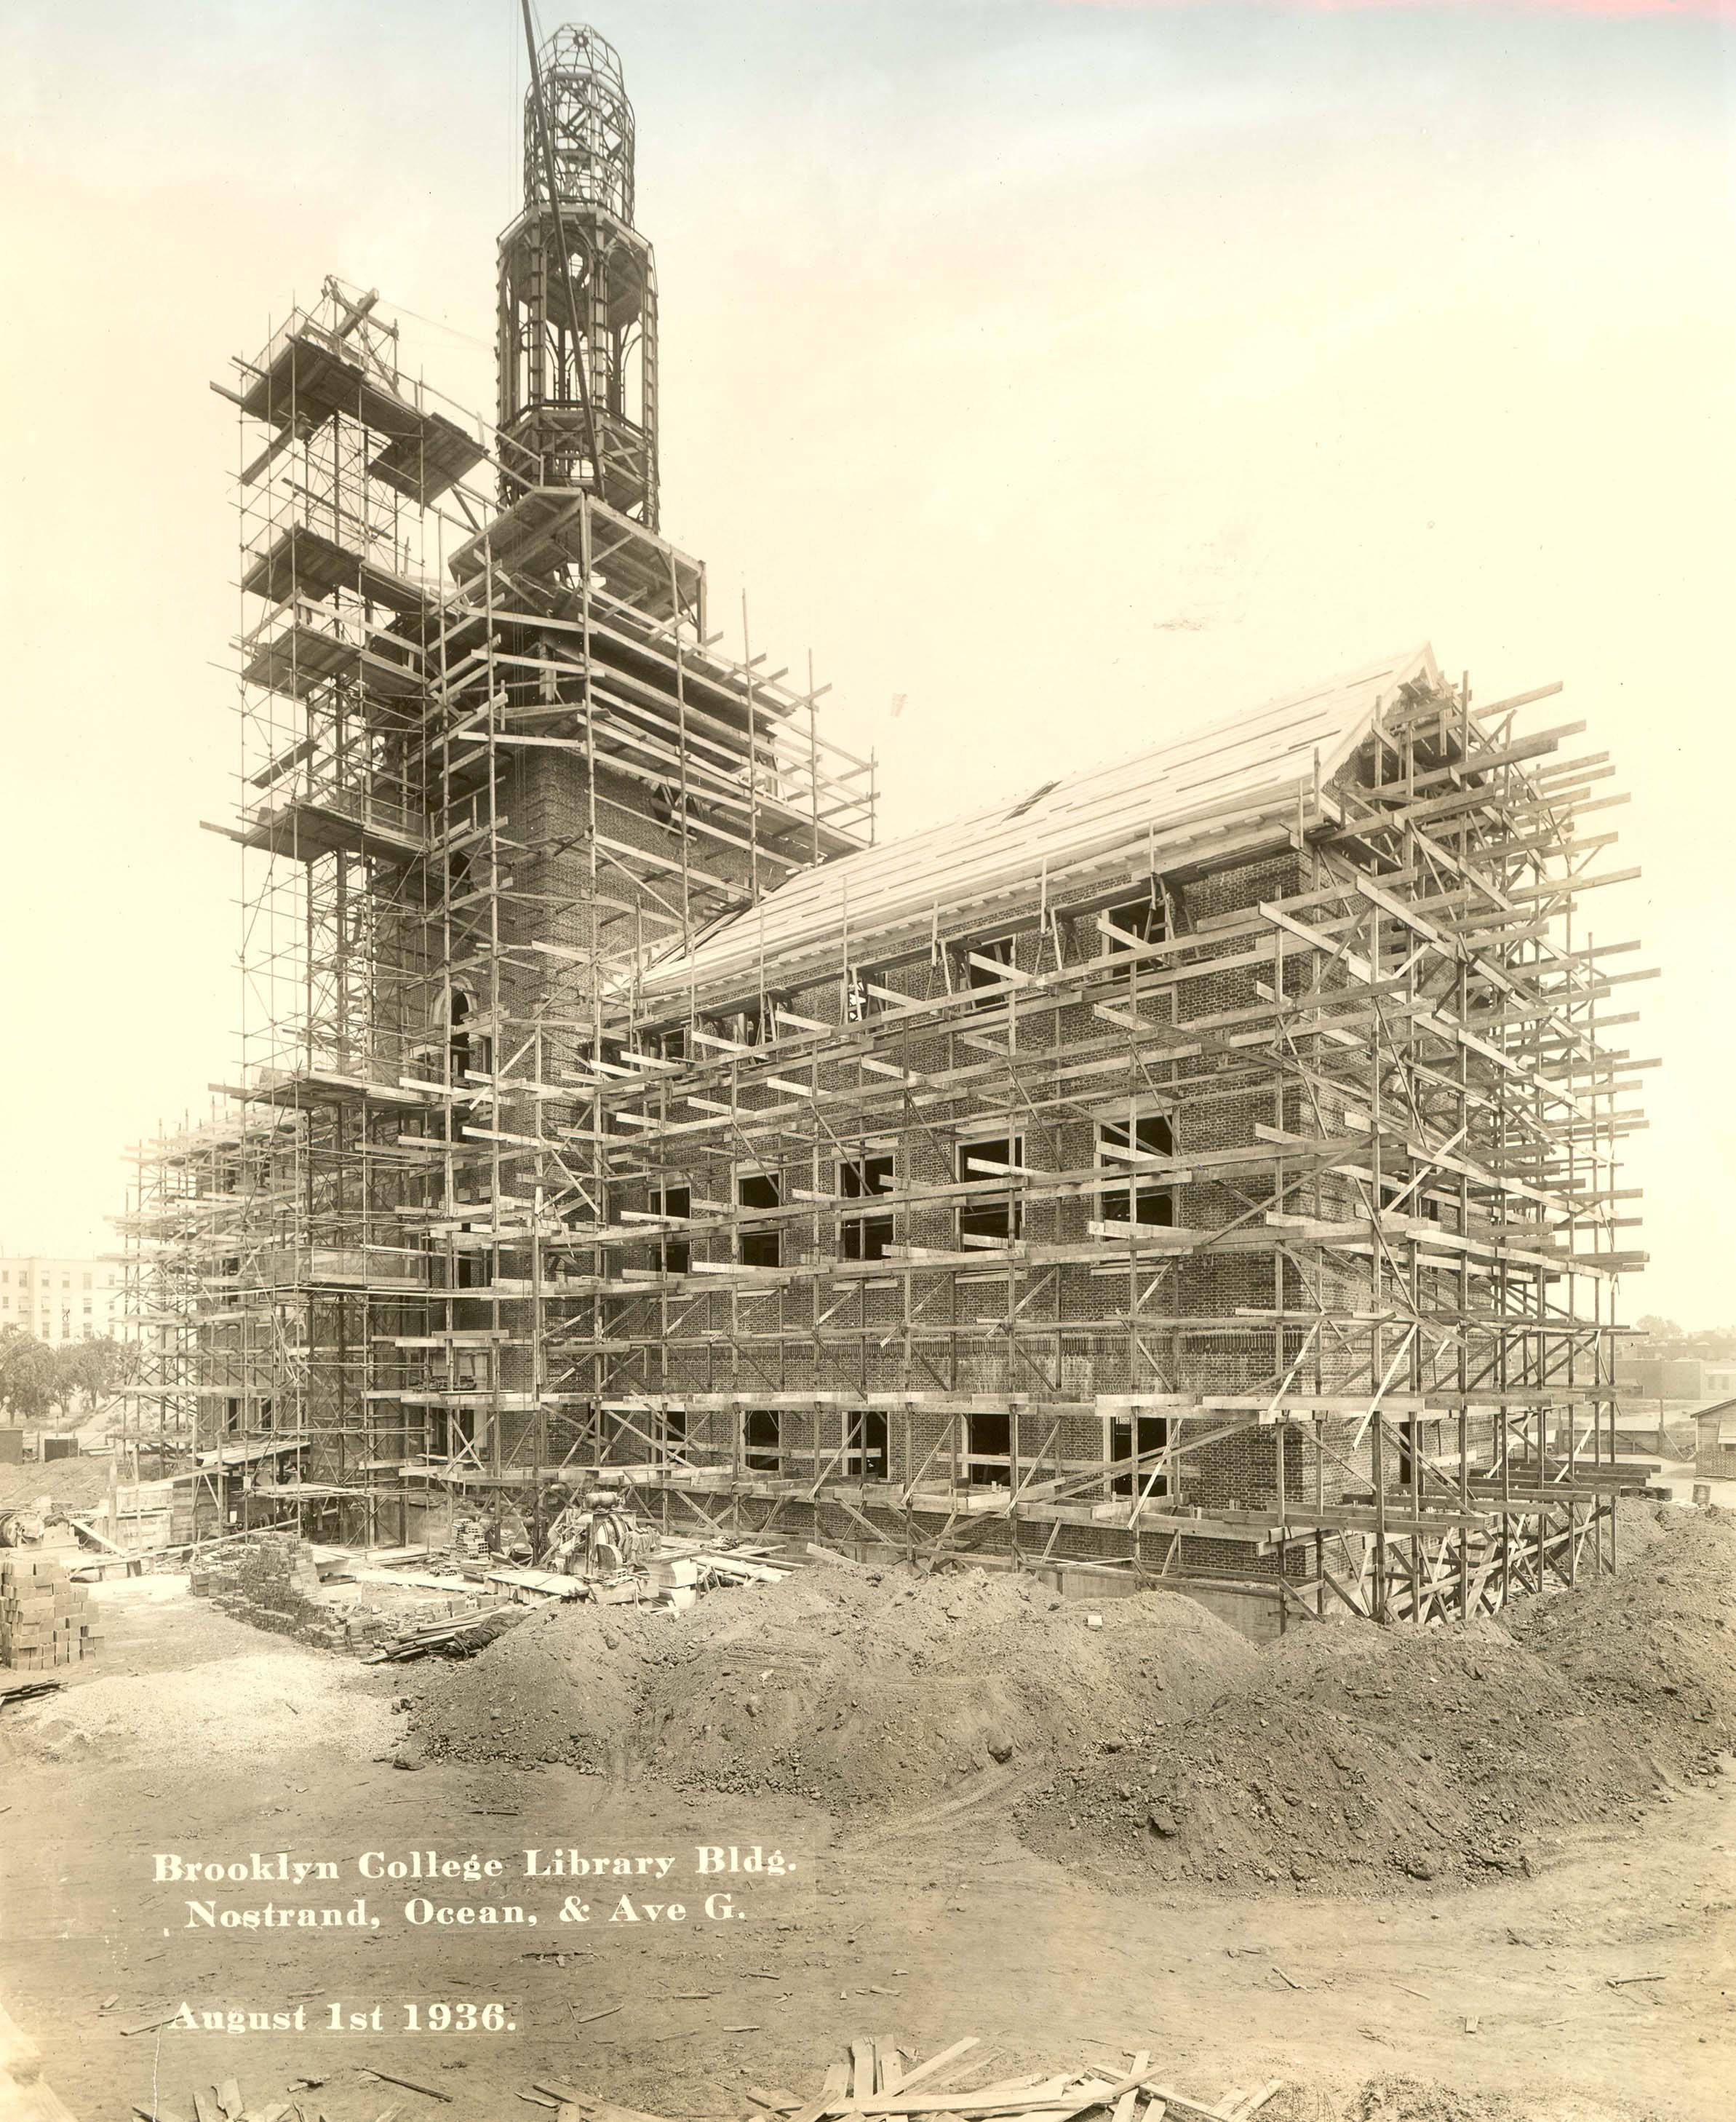 Construction of LaGuardia Hall